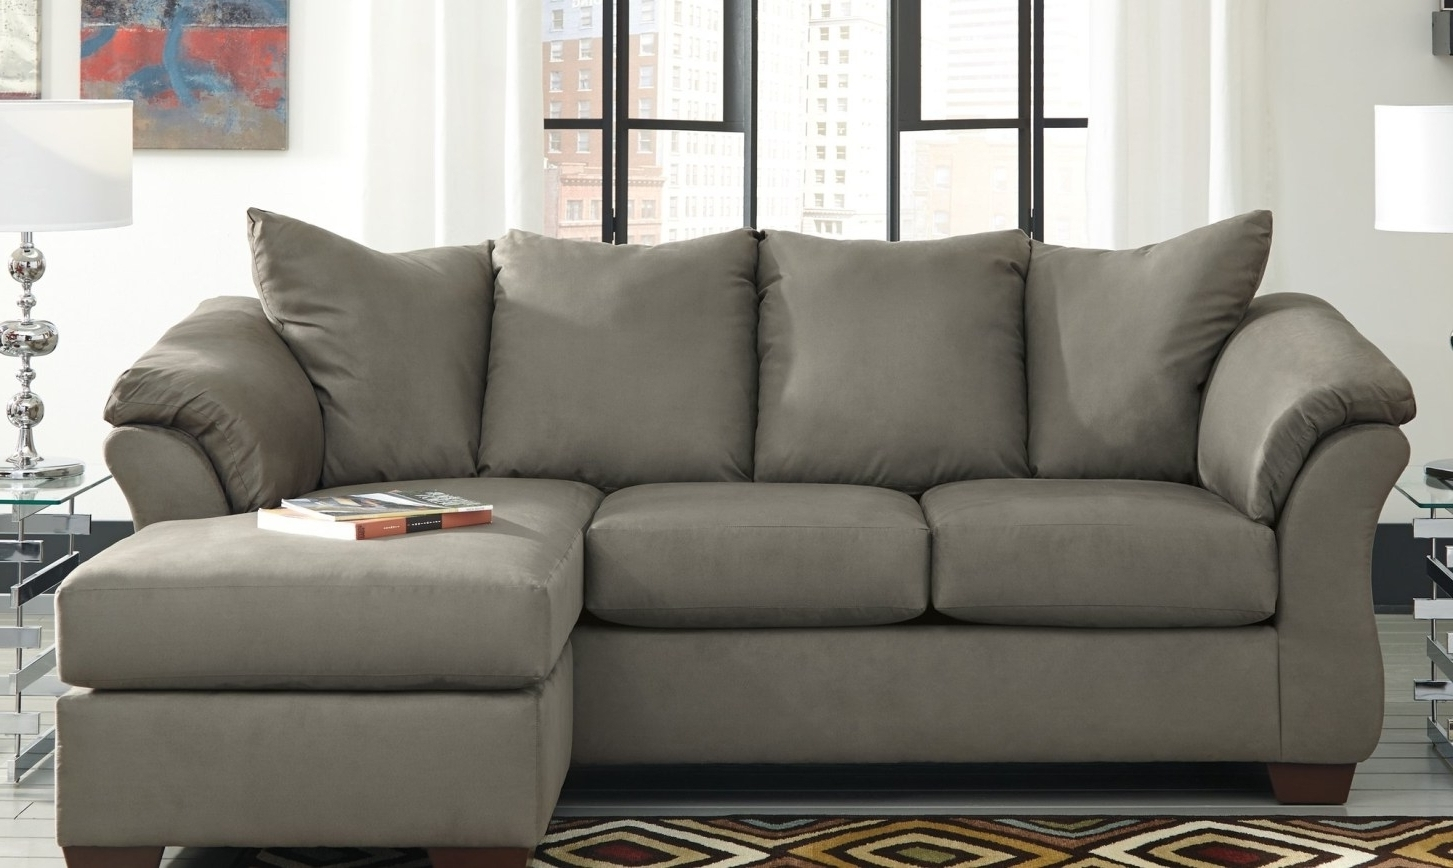 Incredible Abbyson Living Charlotte Dark Brown Sectional Sofa And Within Trendy Charlotte Sectional Sofas (View 10 of 15)